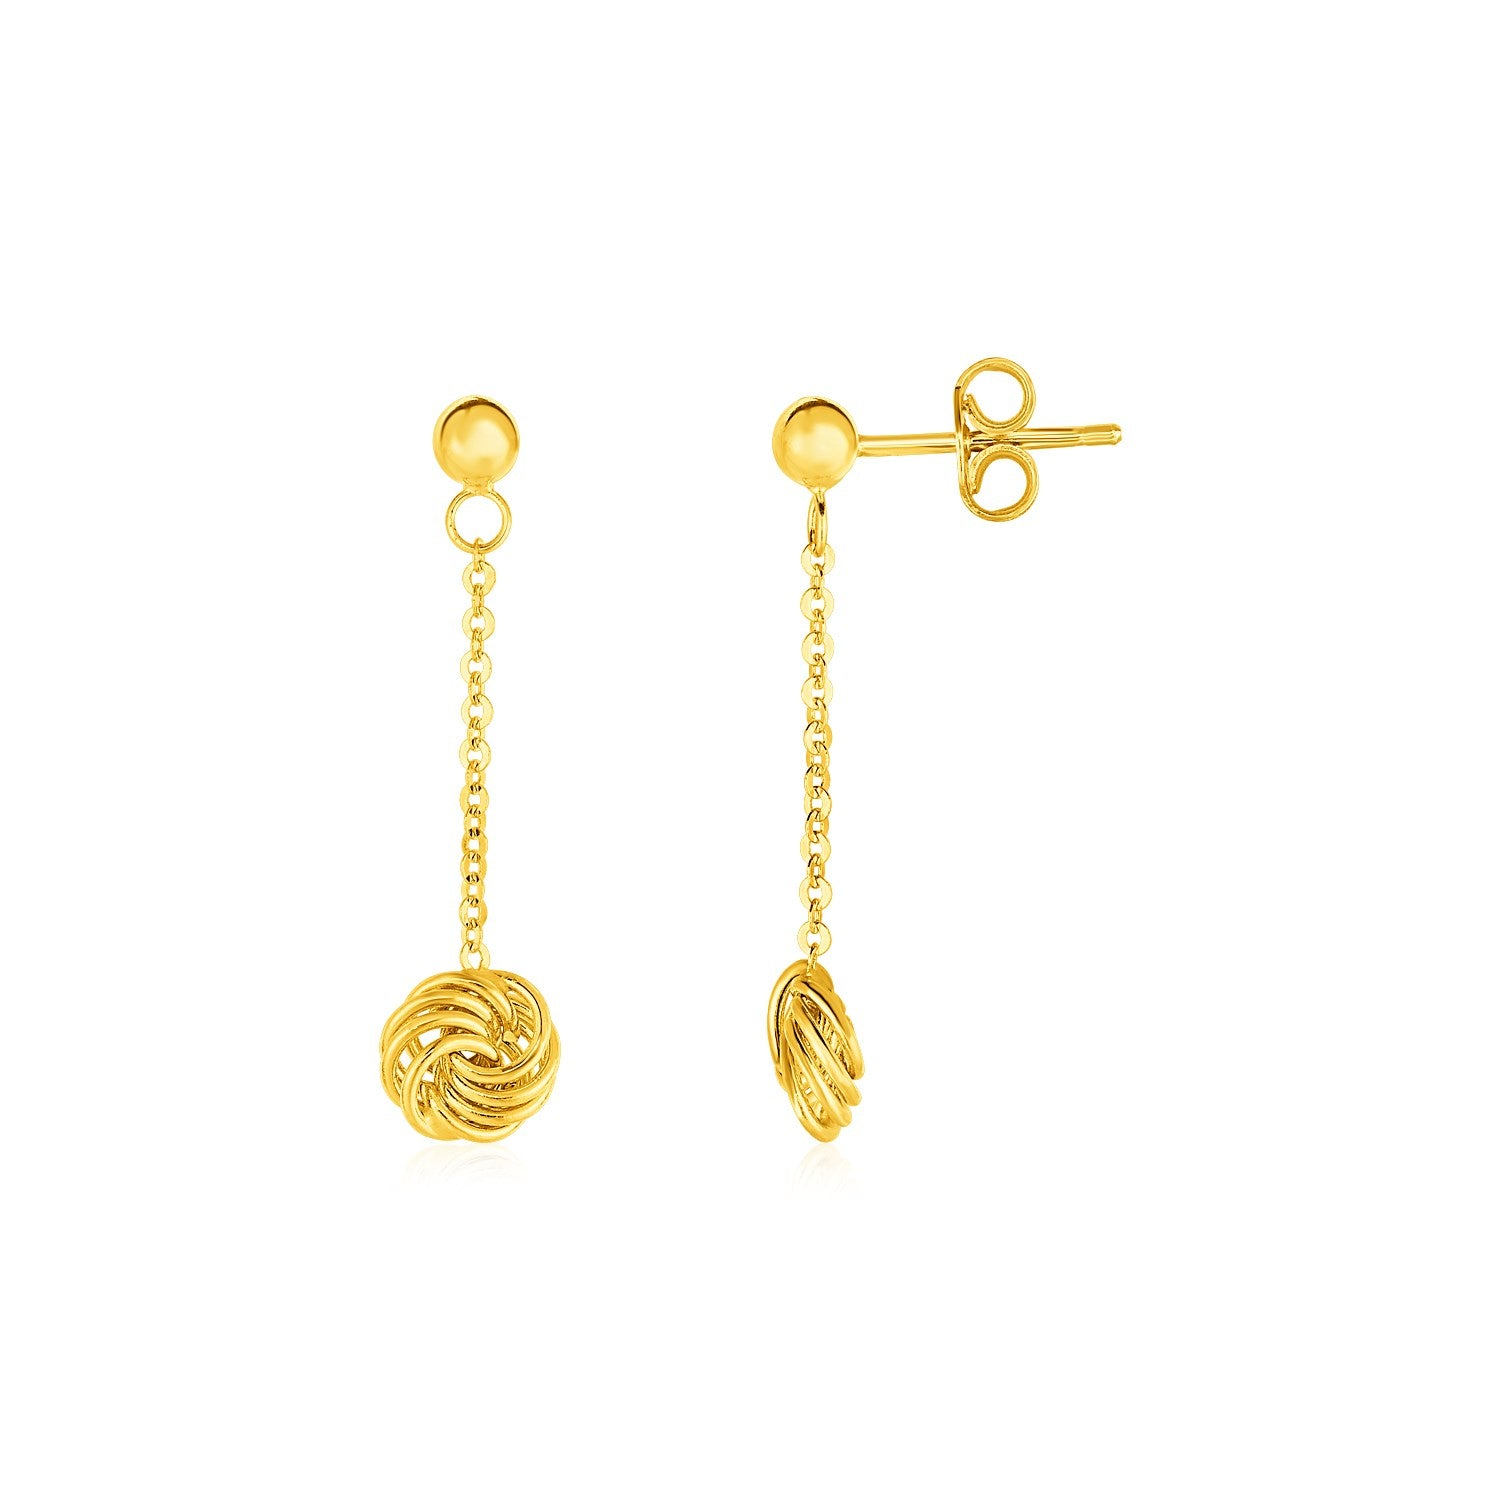 Post Earrings with Love Knot Drops in 14K Yellow Gold